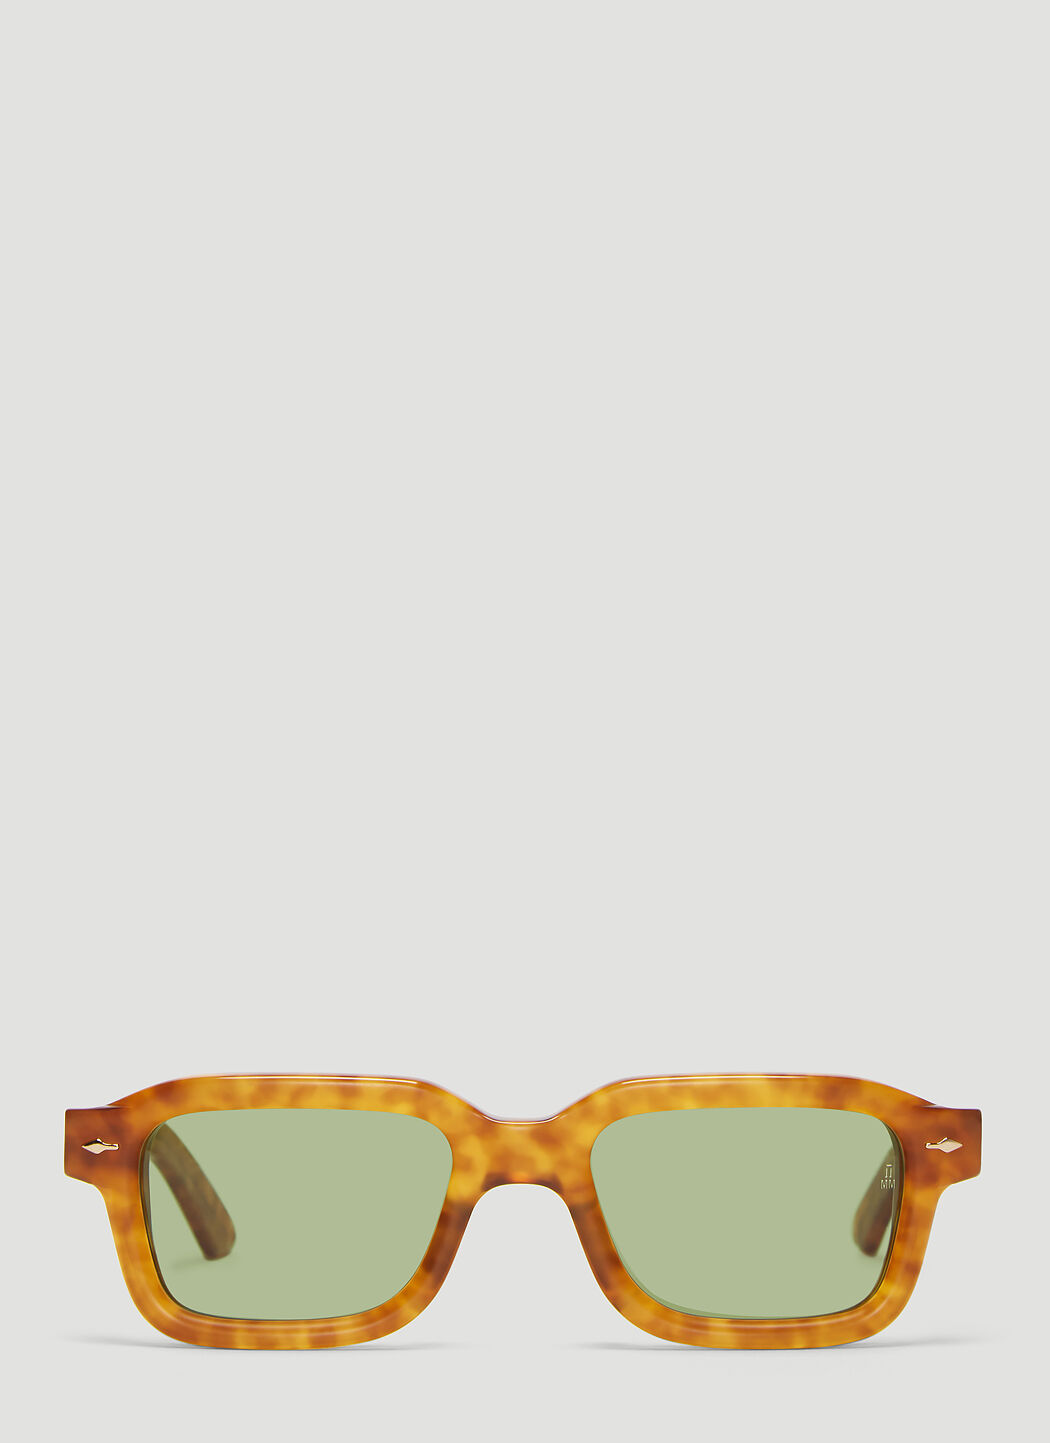 Jacques Marie Mage Sunglasses Sandro Sunglasses in Hickory Brown